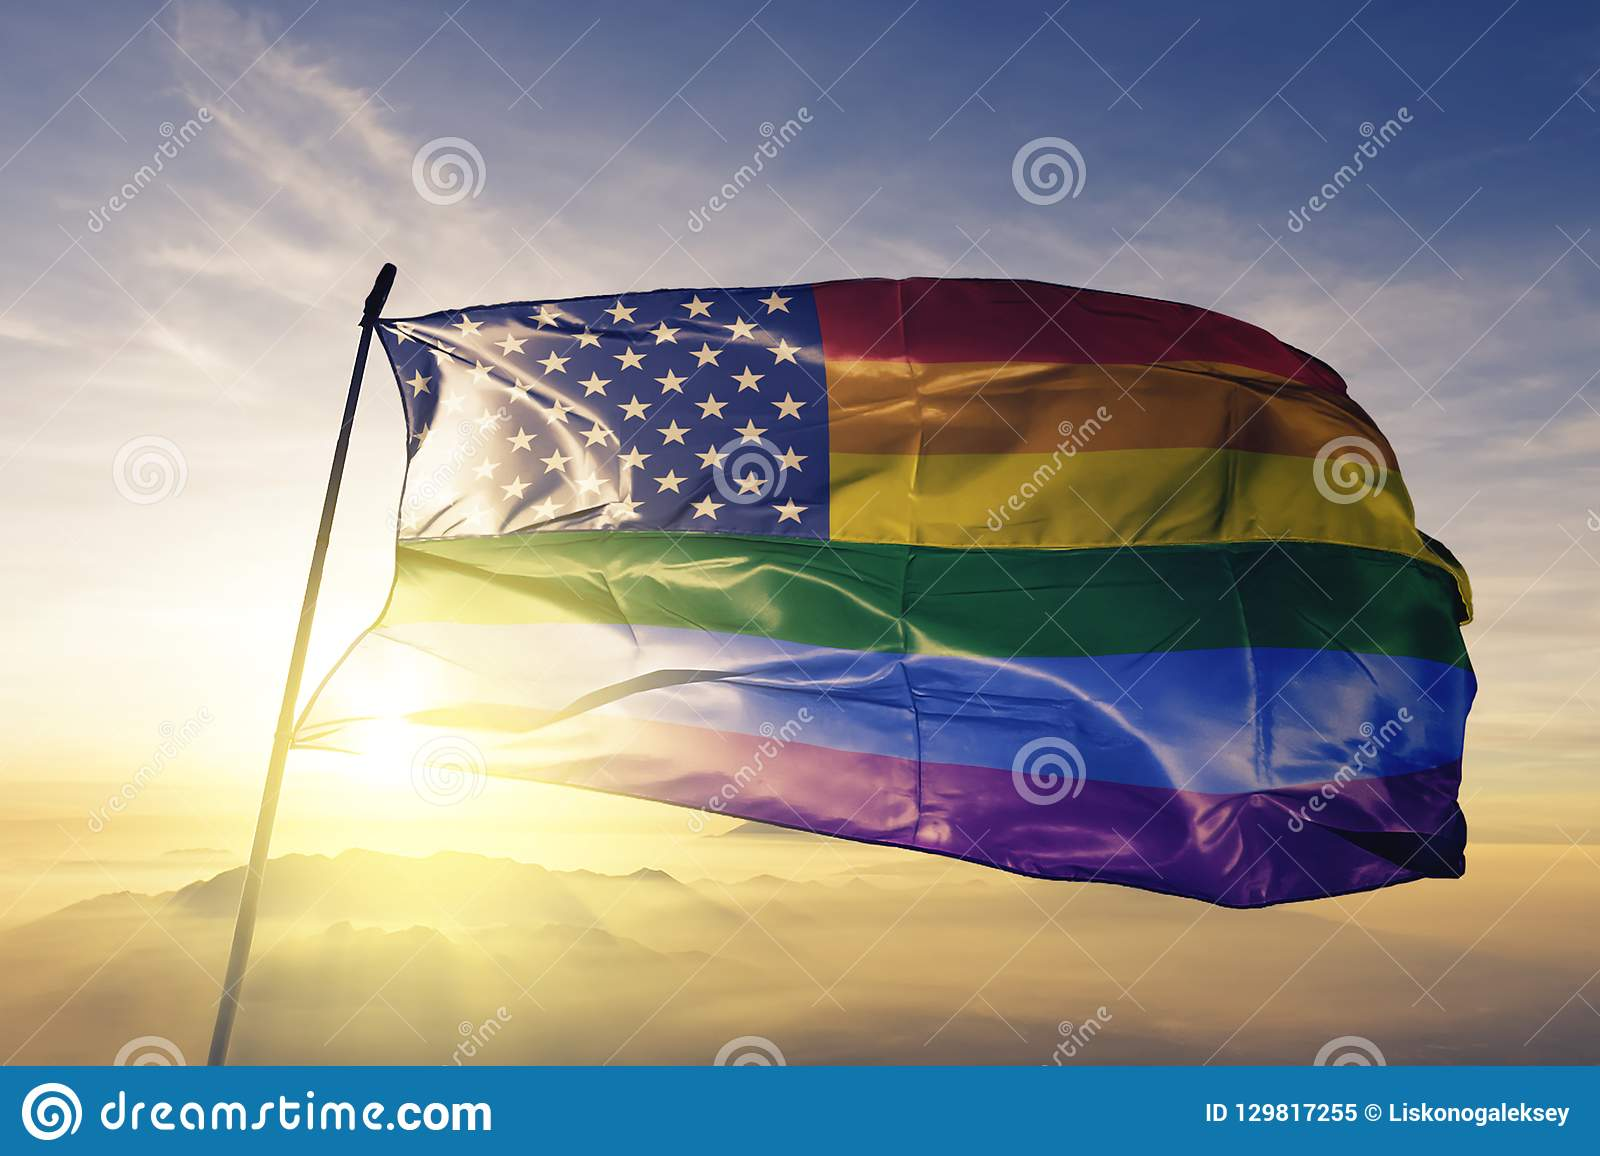 American flag stars gay pride rainbow flag textile cloth fabric waving on the top sunrise mist fog